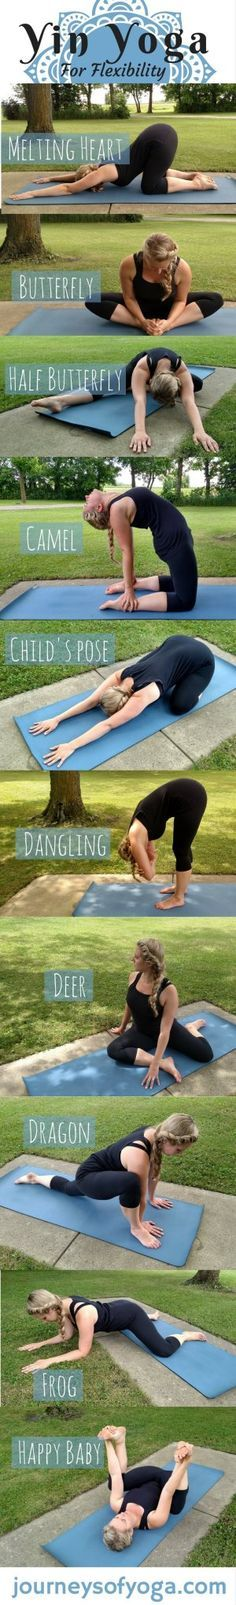 More poses in the post, plus yin yoga benefits Posted By: NewHowToLoseBellyFat.com